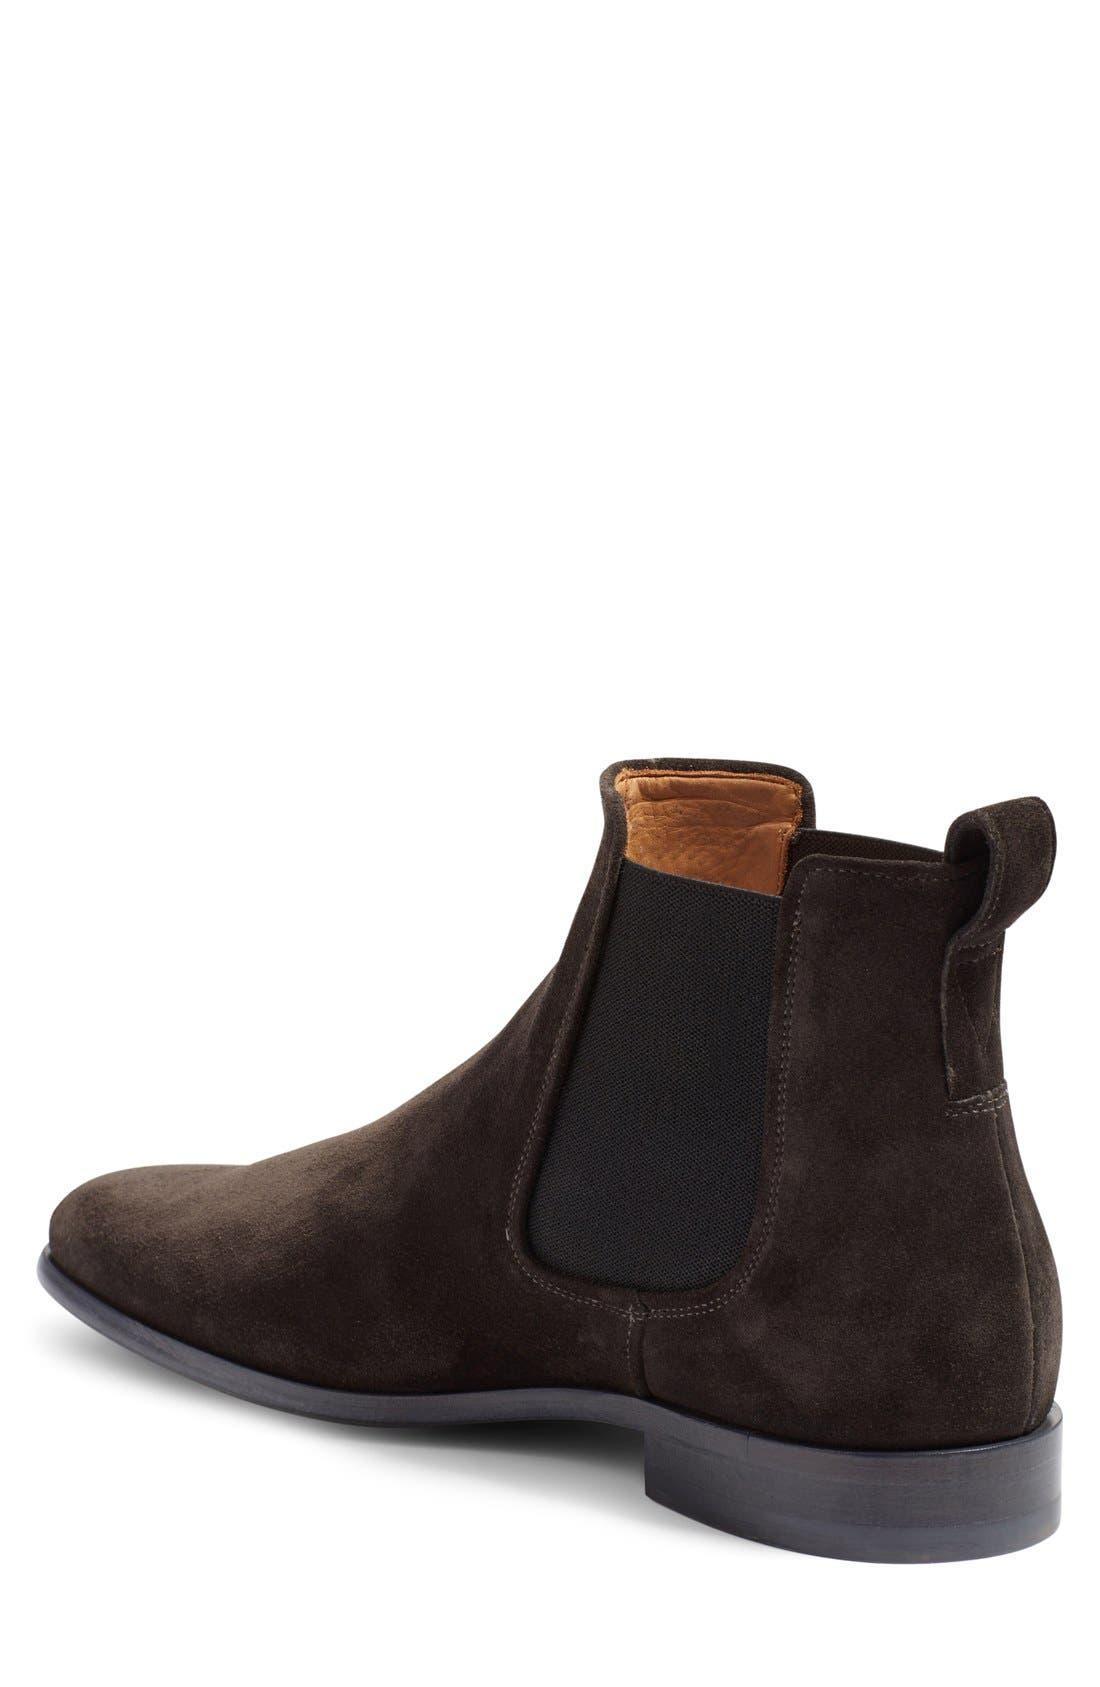 Arthur Chelsea Boot,                             Alternate thumbnail 14, color,